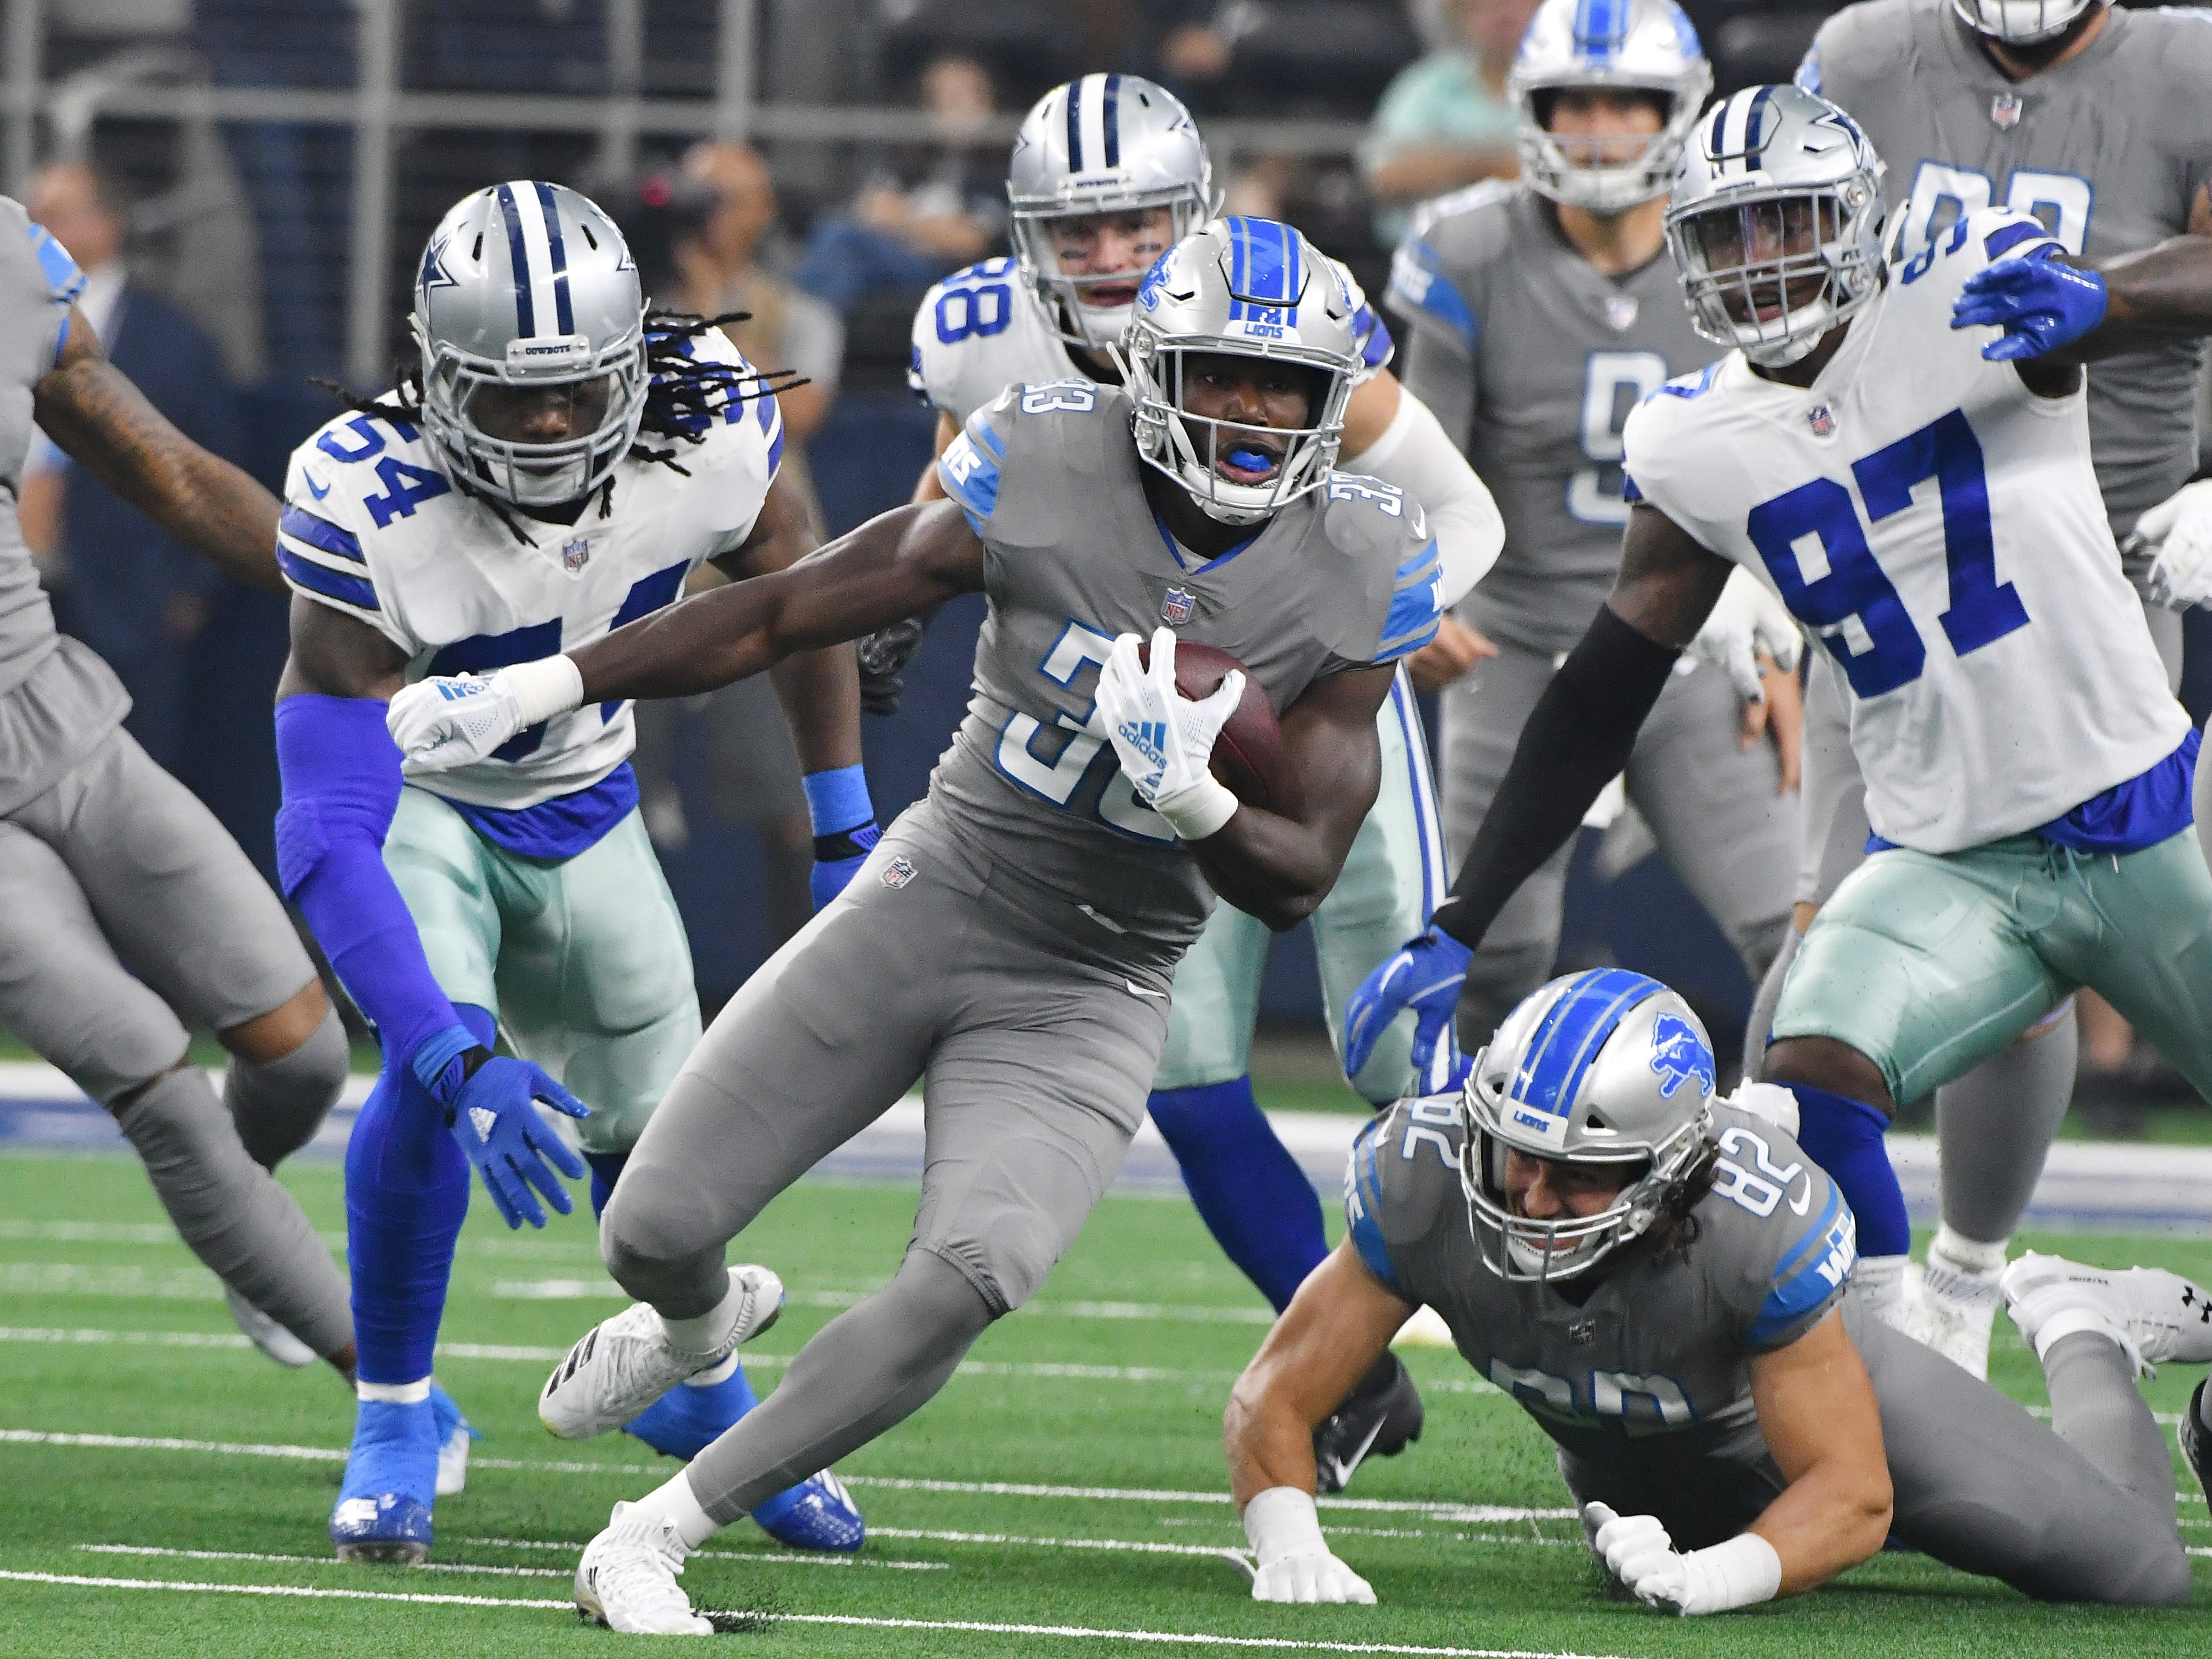 Lions running back Kerryon Johnson takes the first Detroit offensive play of the game and takes it down field for a long first down in the first quarter.